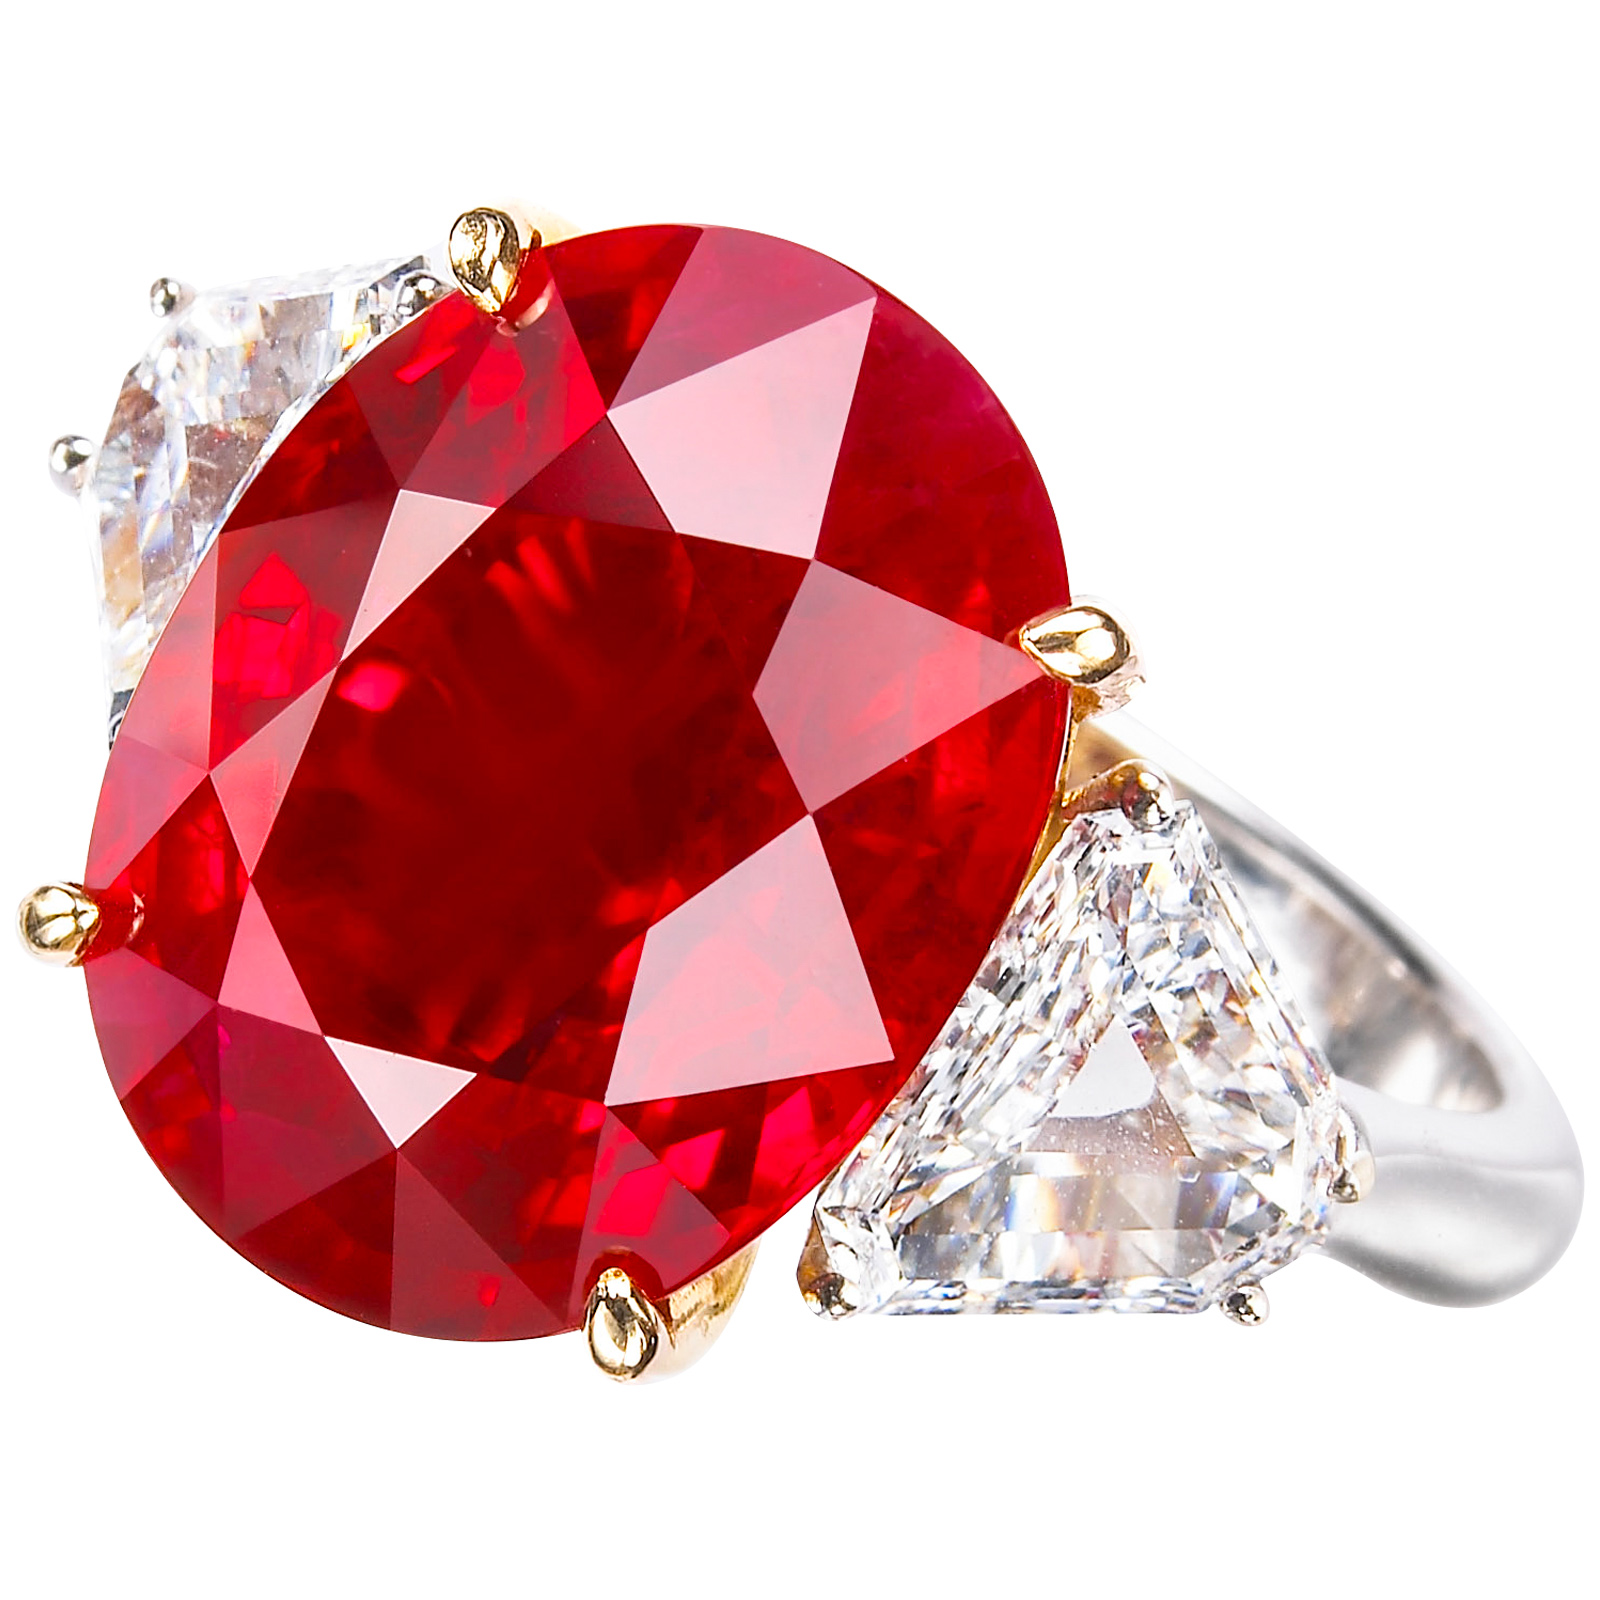 RUBY & DIAMOND THREE STONE RING BESPOKE FINE JEWELLERY BY SHAHINA HATTA